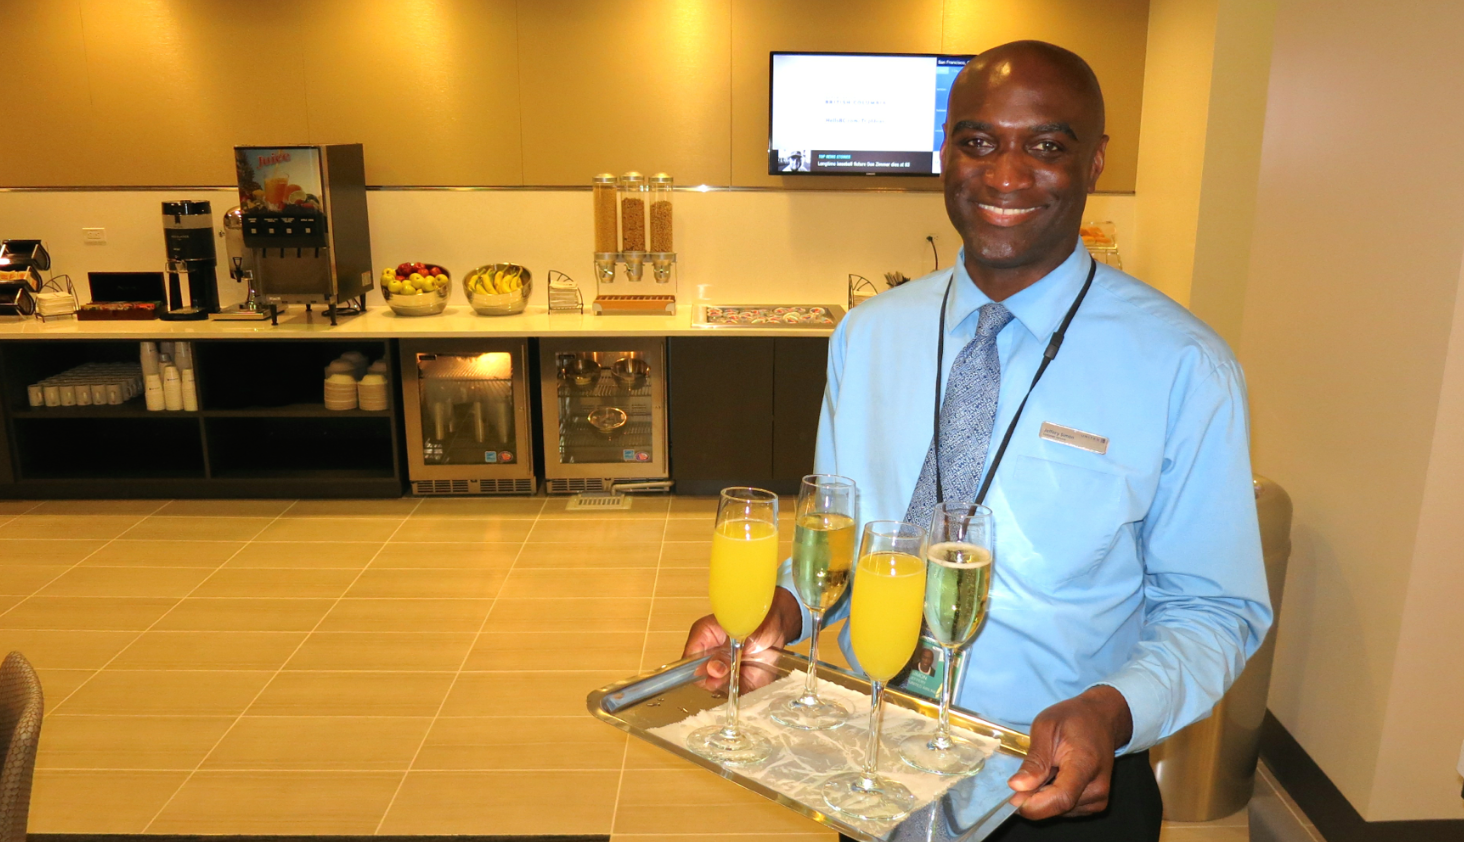 On opening day, United was offering free champagne and mimosas to guests (Photo: Chris McGinnis)